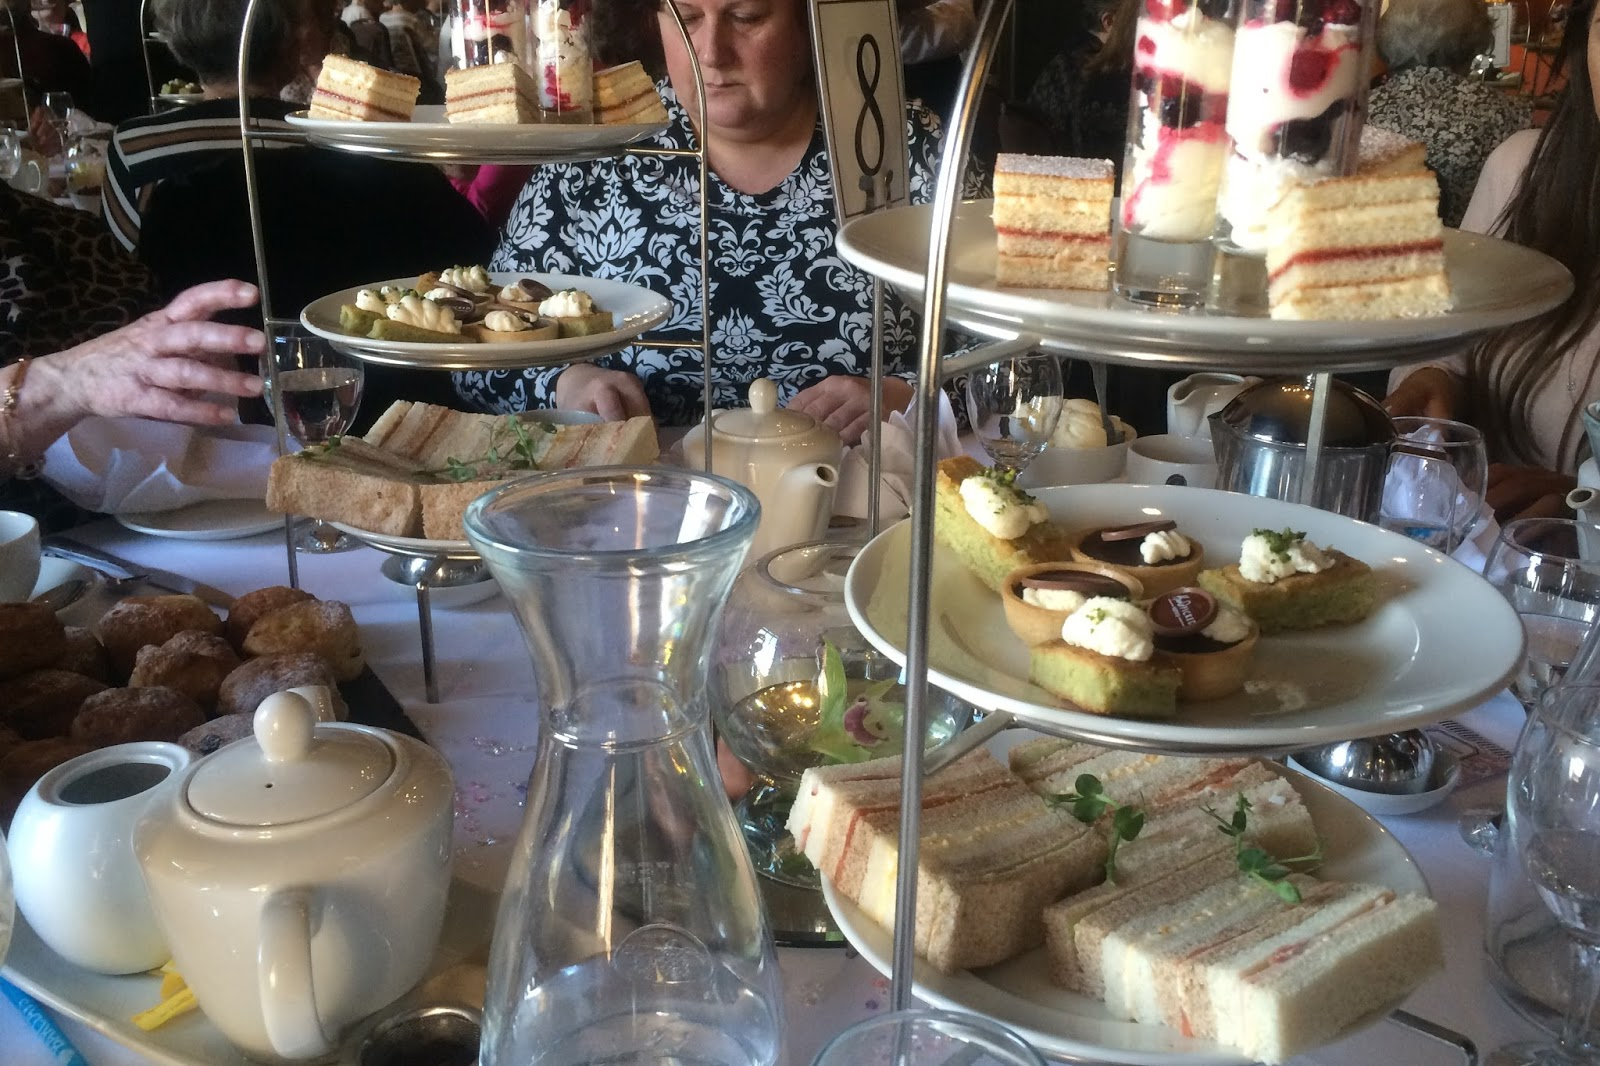 Ladies Afternoon Tea at Crathorne Hall with Butterwick Hospice Care - Review